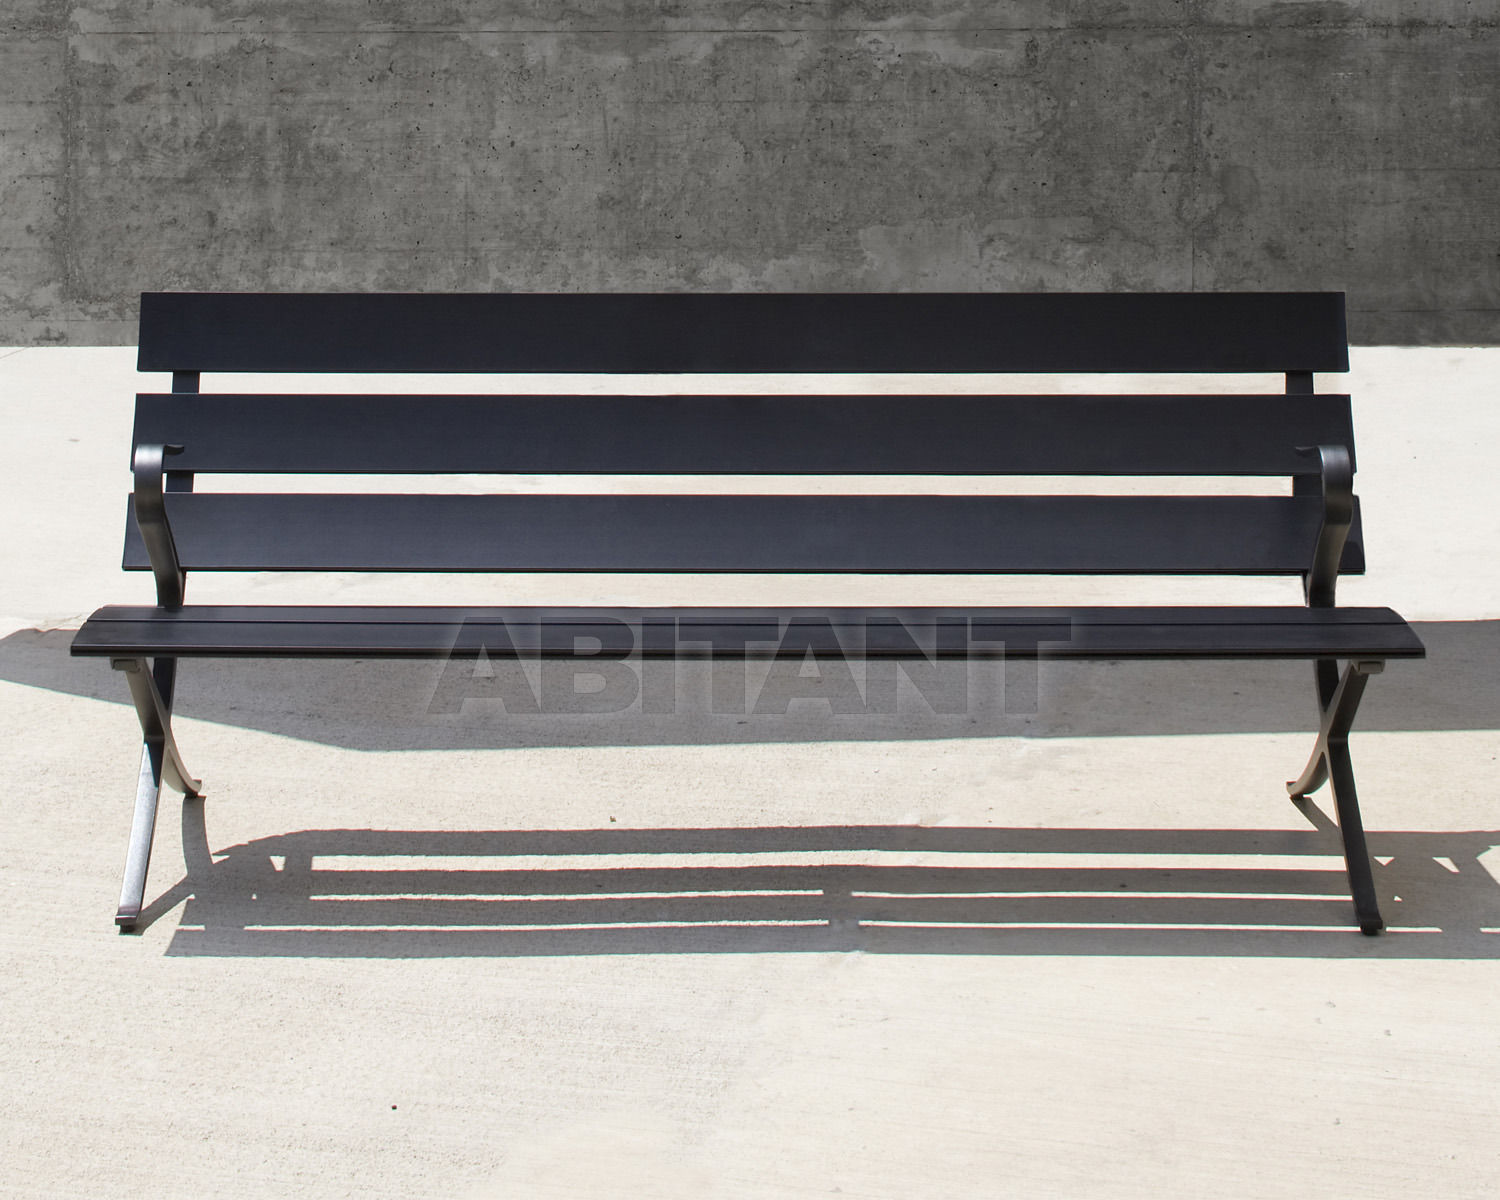 Buy Bench BENCH B B.D (Barcelona Design) PUBLIC SEATING Bench 3 seats 180 + 2xArm